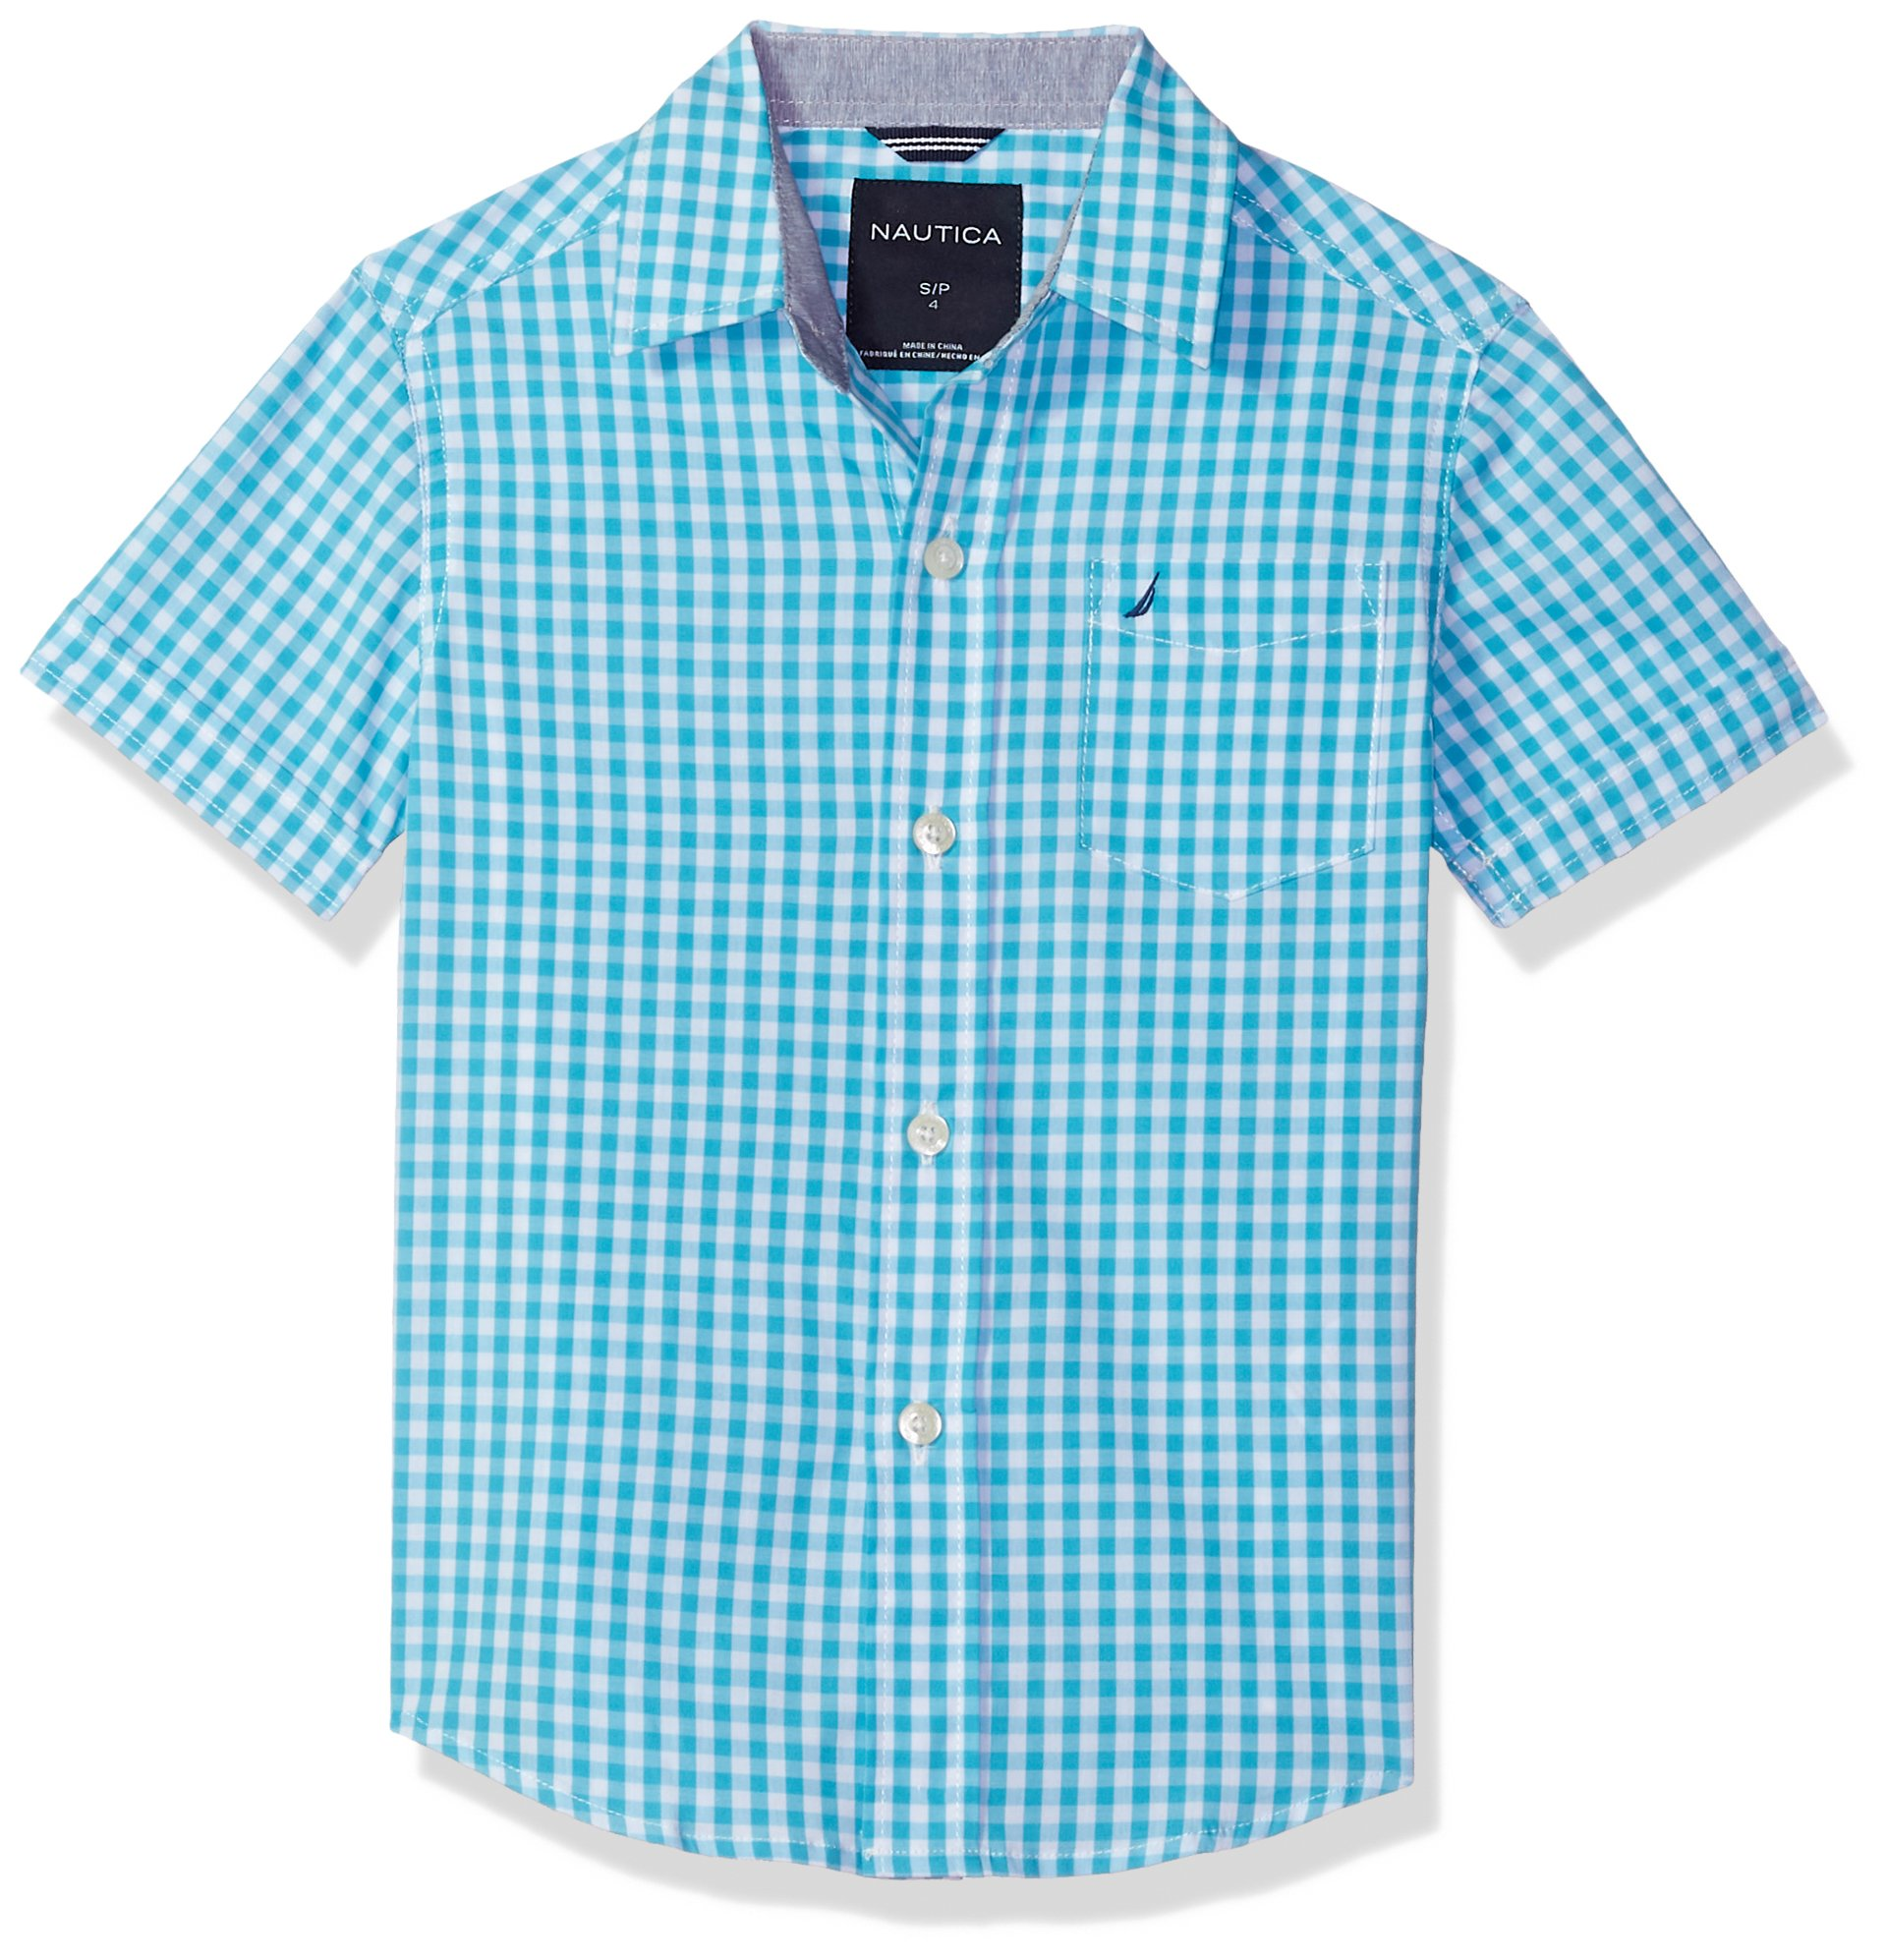 Nautica Boys' Little Short Sleeve Gingham Woven Shirt, Samuel Casper Blue 5/6